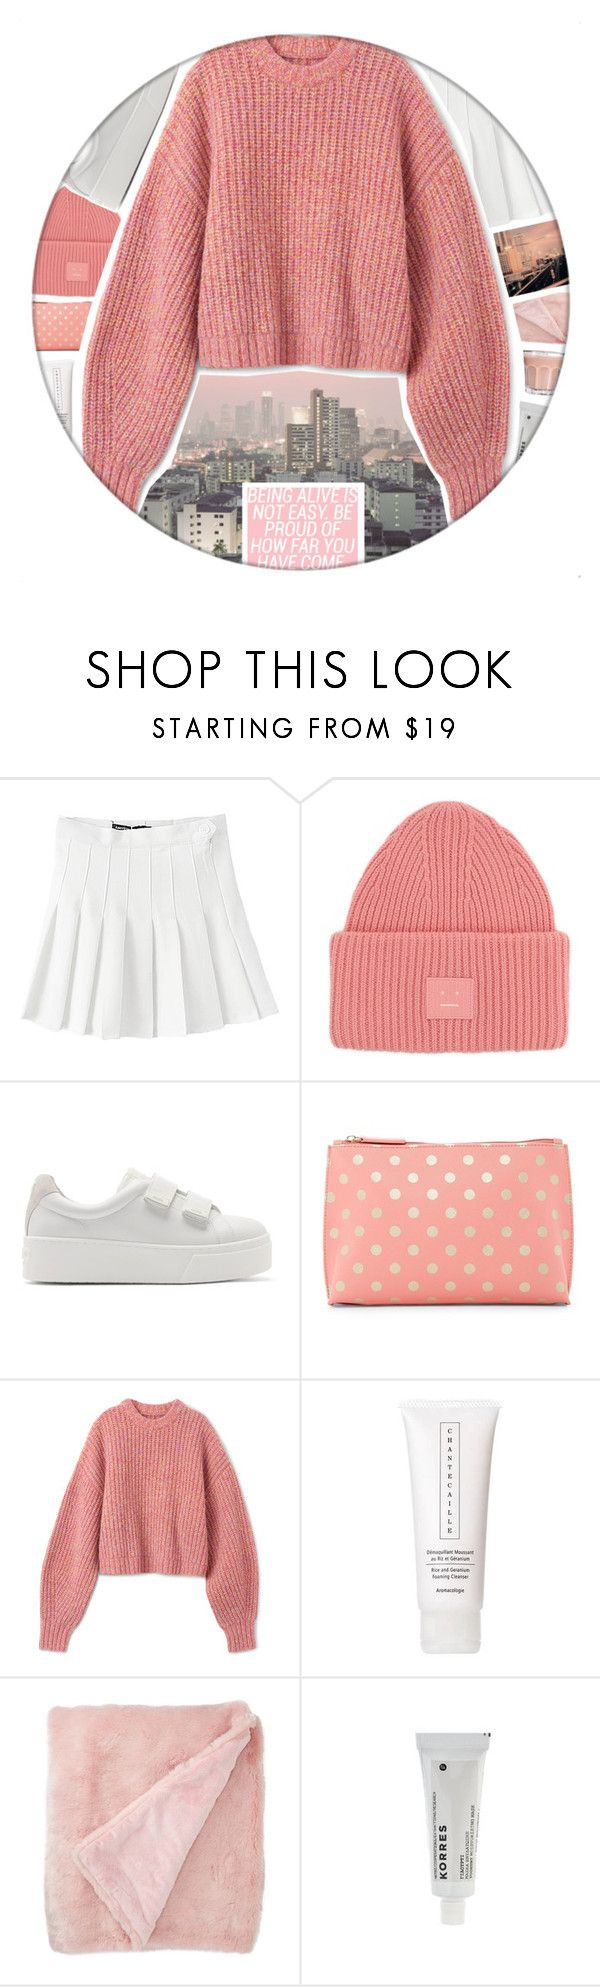 """1446"" by glitterals ❤ liked on Polyvore featuring American Apparel, Acne Studios, Kenzo, Shiraleah, Chantecaille, Nordstrom Rack and Korres"